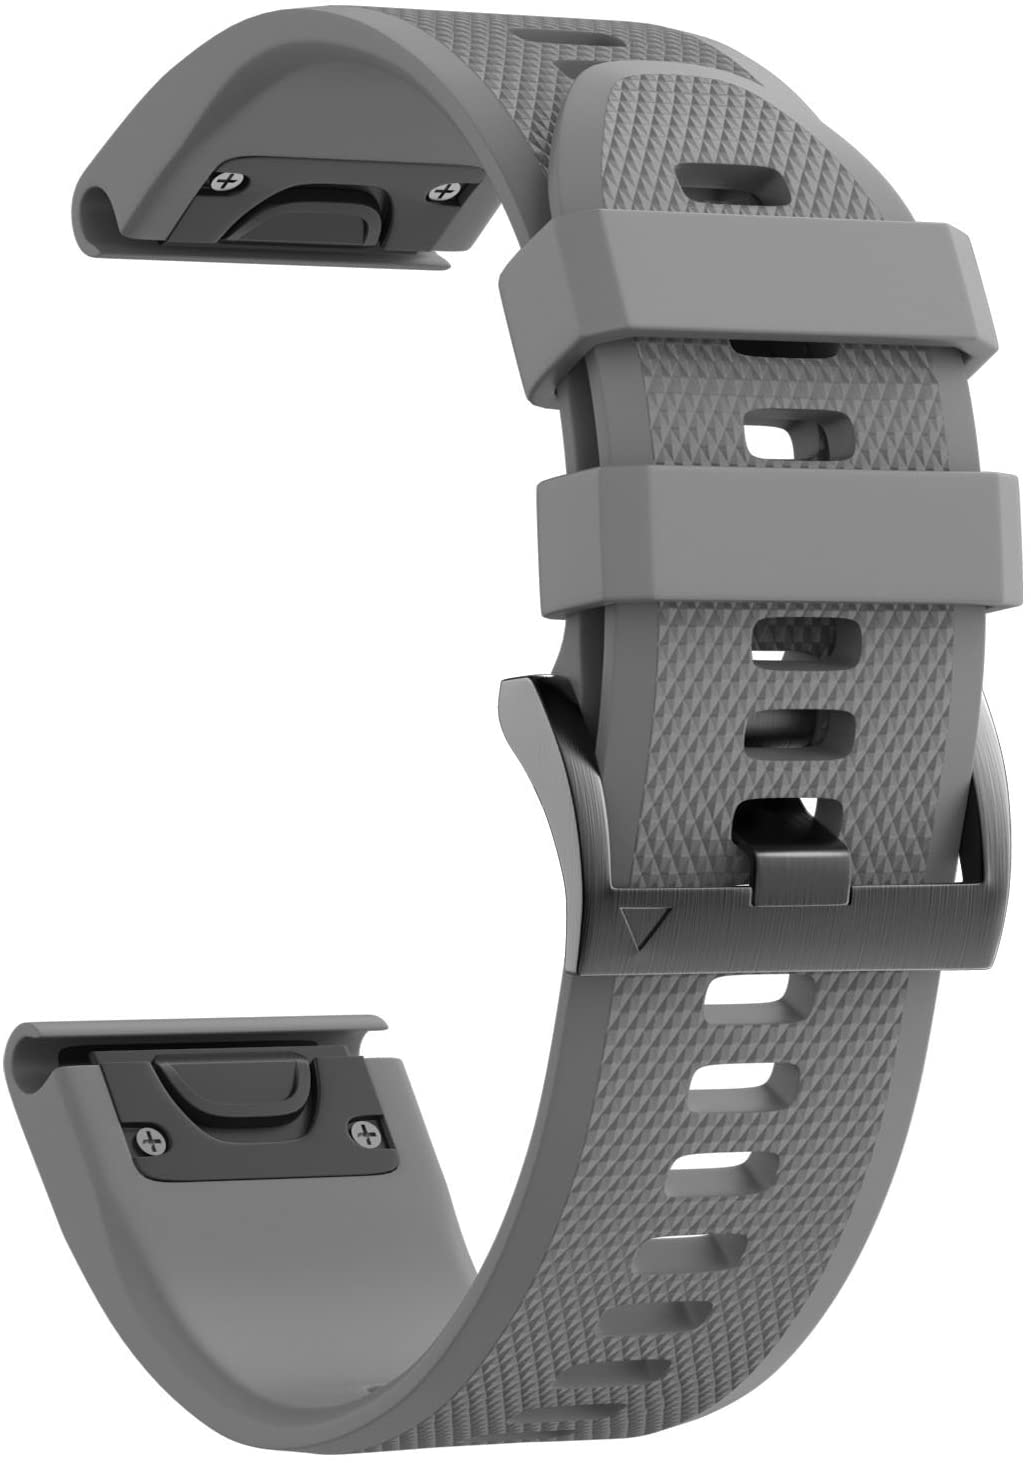 ANCOOL Compatible with Fenix 5X Band Easy Fit 26mm Width Soft Silicone Watch Bands Repalcement for Fenix 5X/Fenix 5X Plus/Fenix 3/Fenix 3HR Smartwatches - Grey